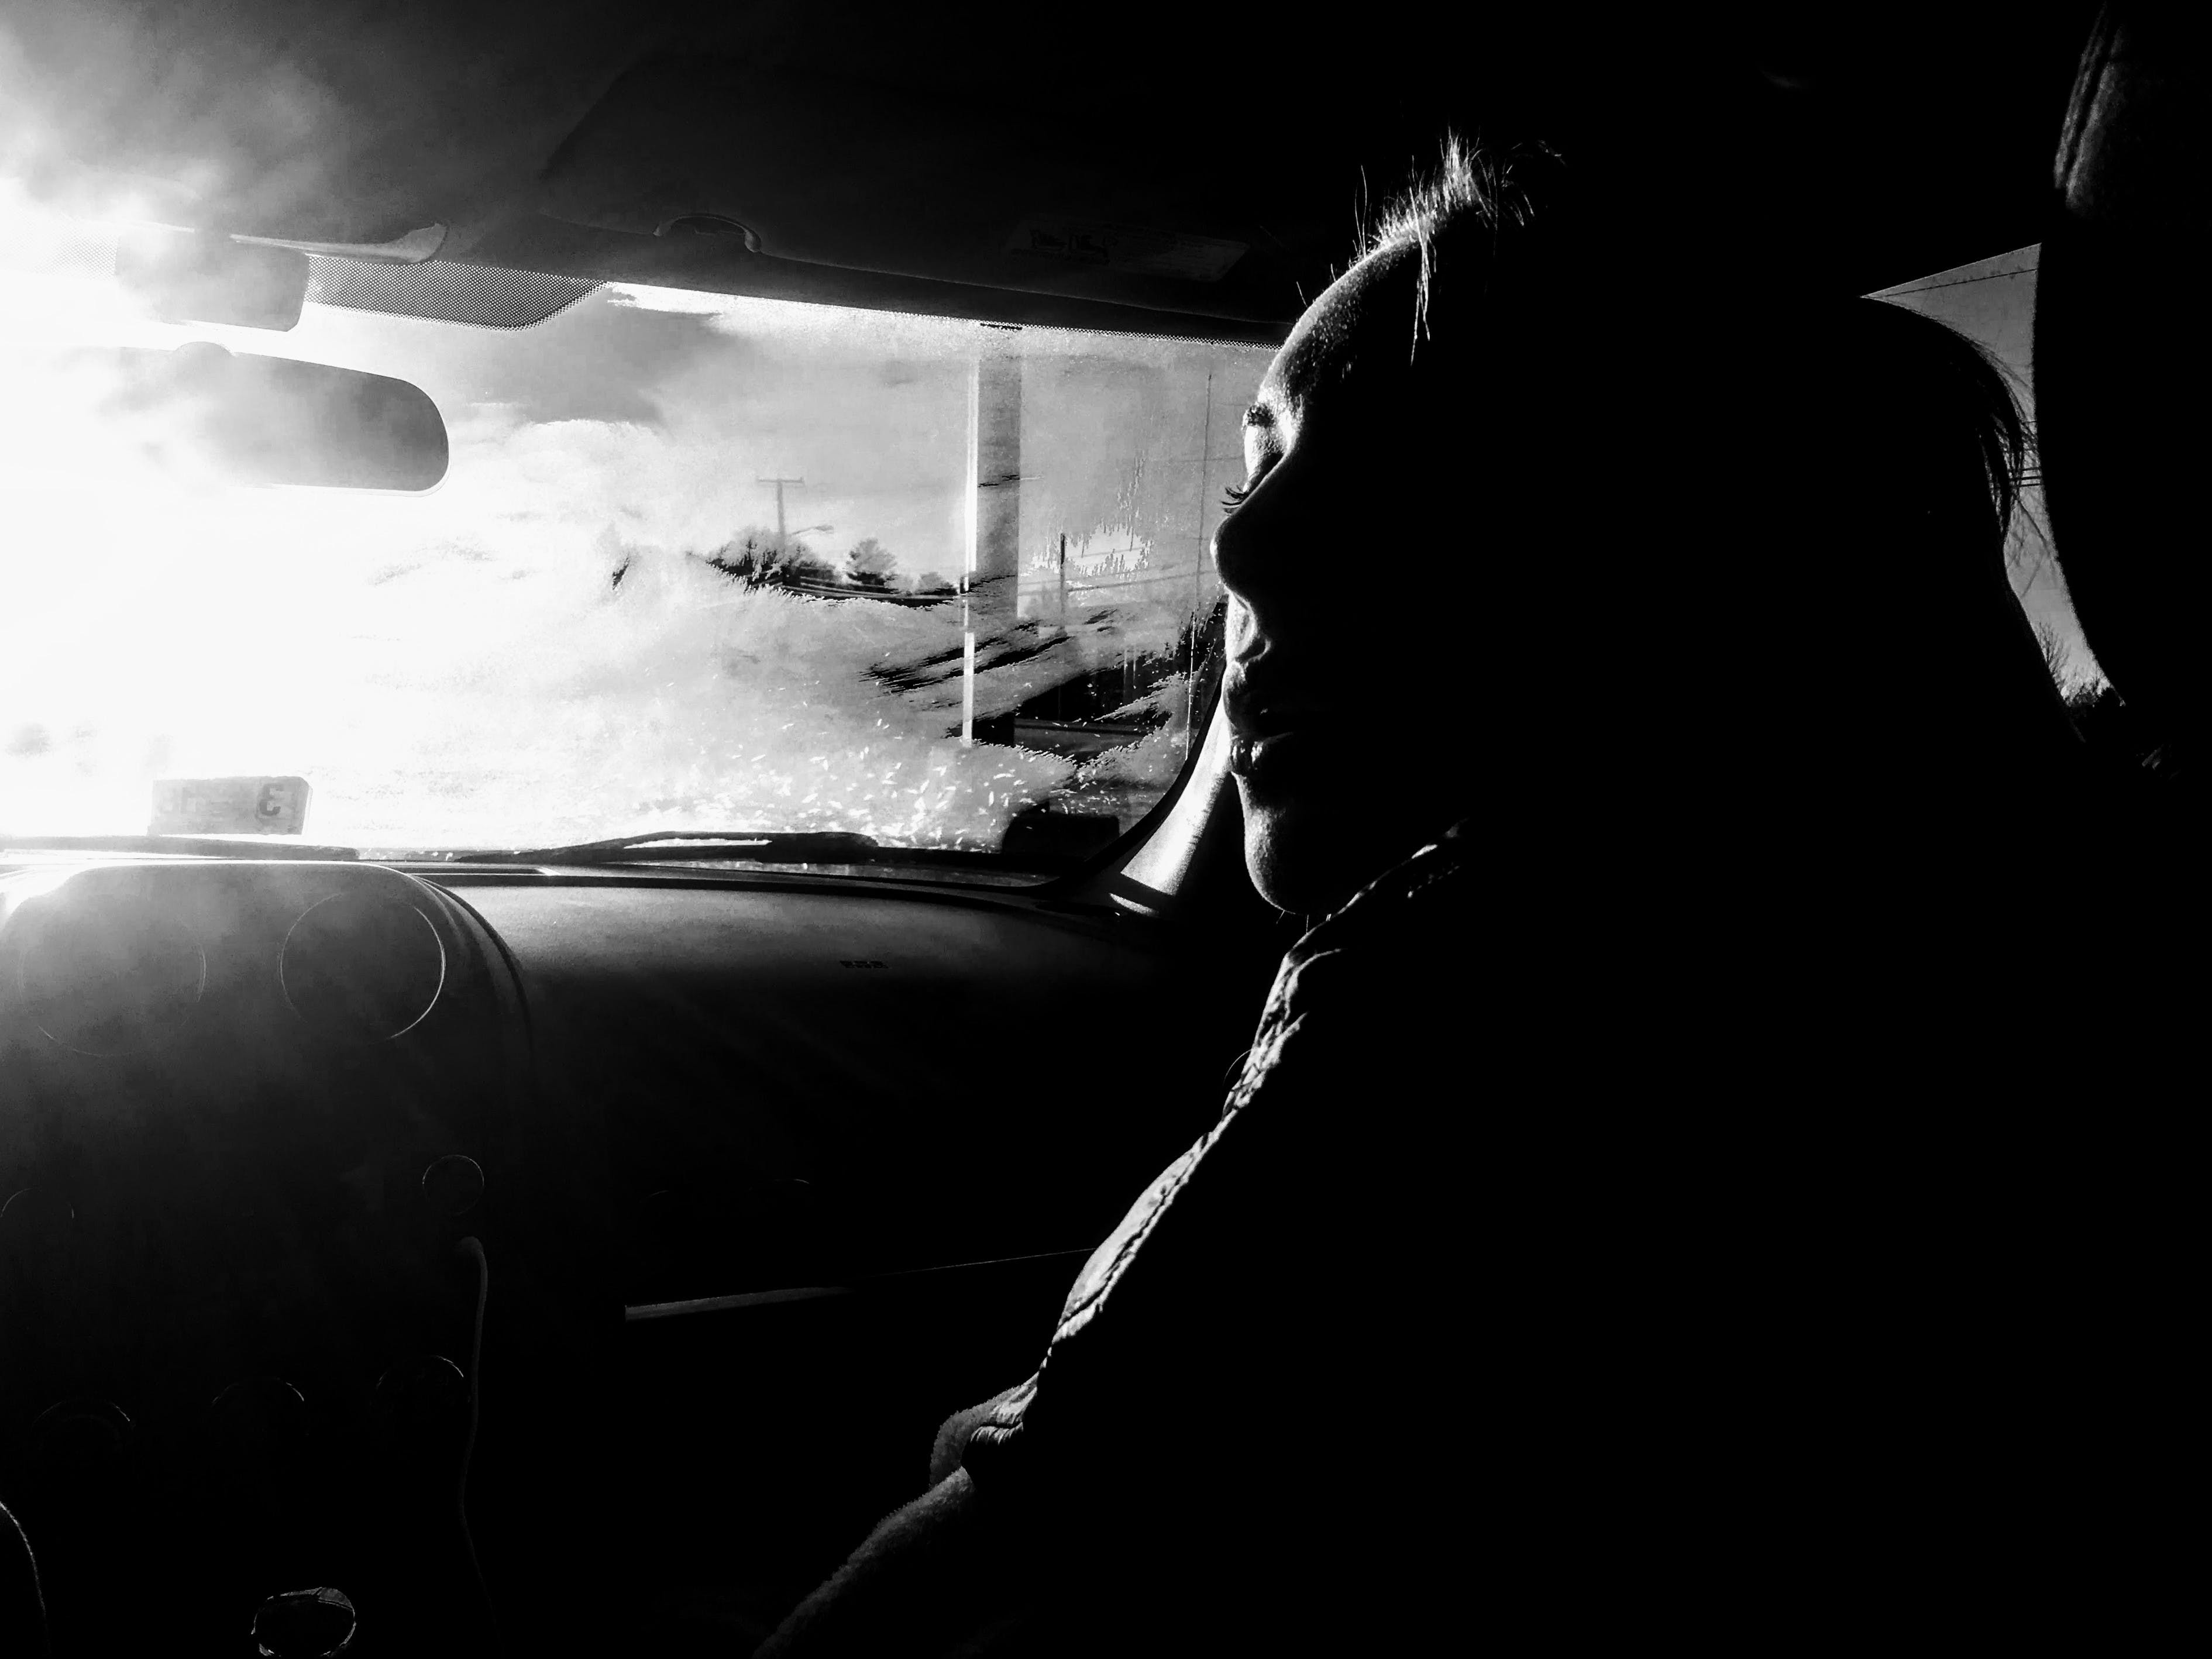 Woman Inside Car Grayscale Photo